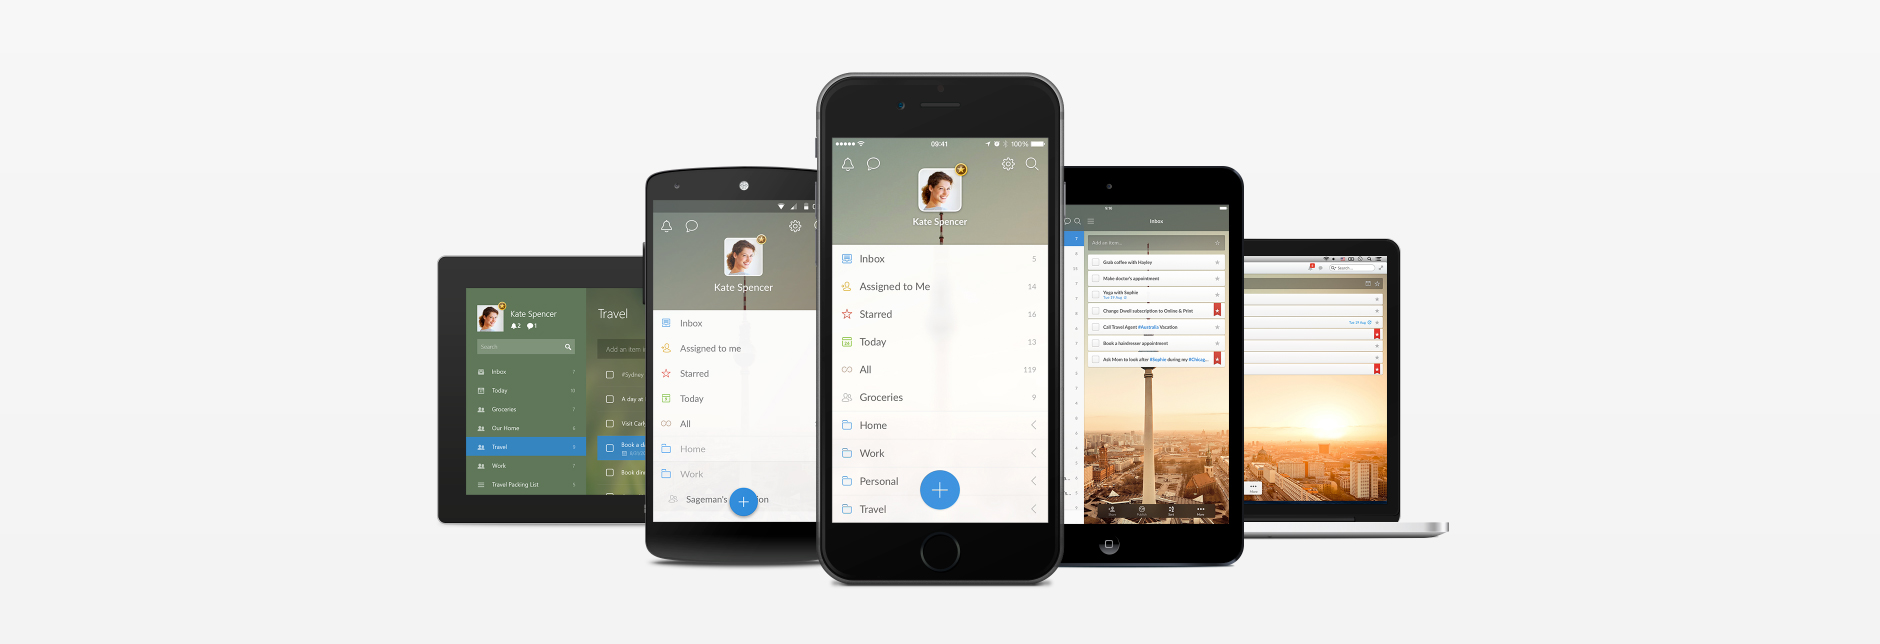 Powerful cross-platform app Wunderlist announces its new public API